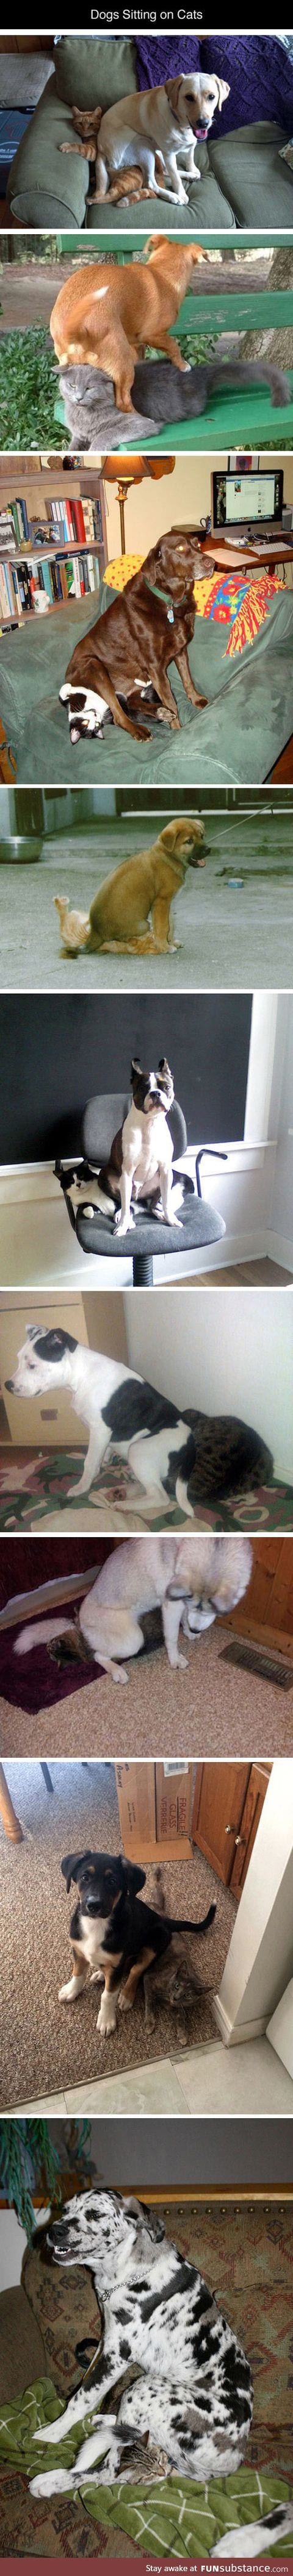 Dogs who found a comfy place to sit